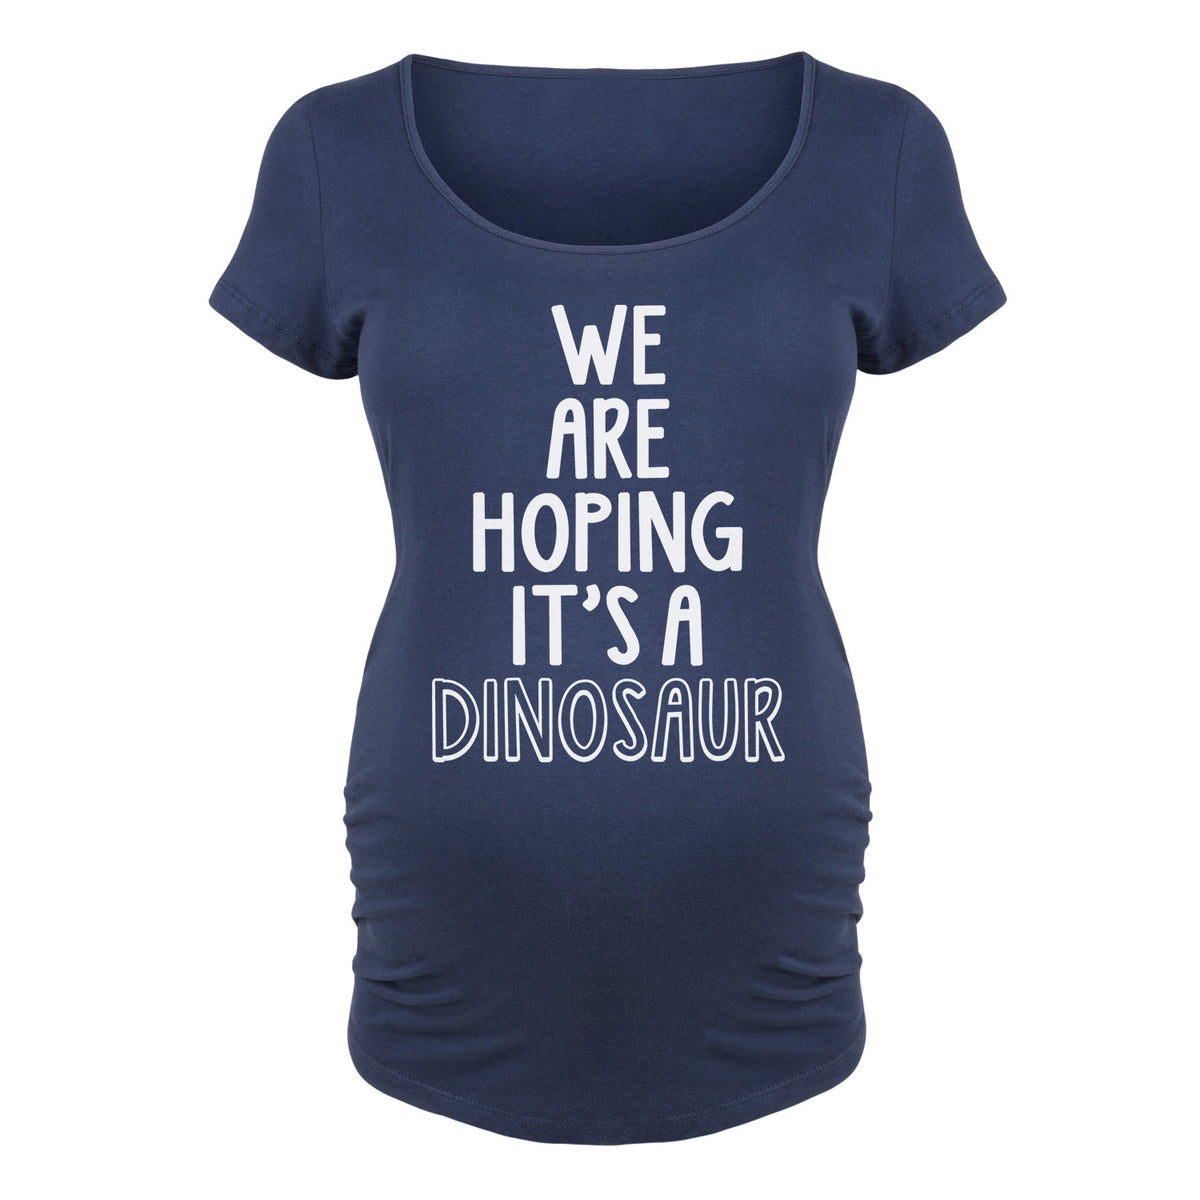 We are Hoping it's a Dinosaur - Maternity Short Sleeve T-Shirt